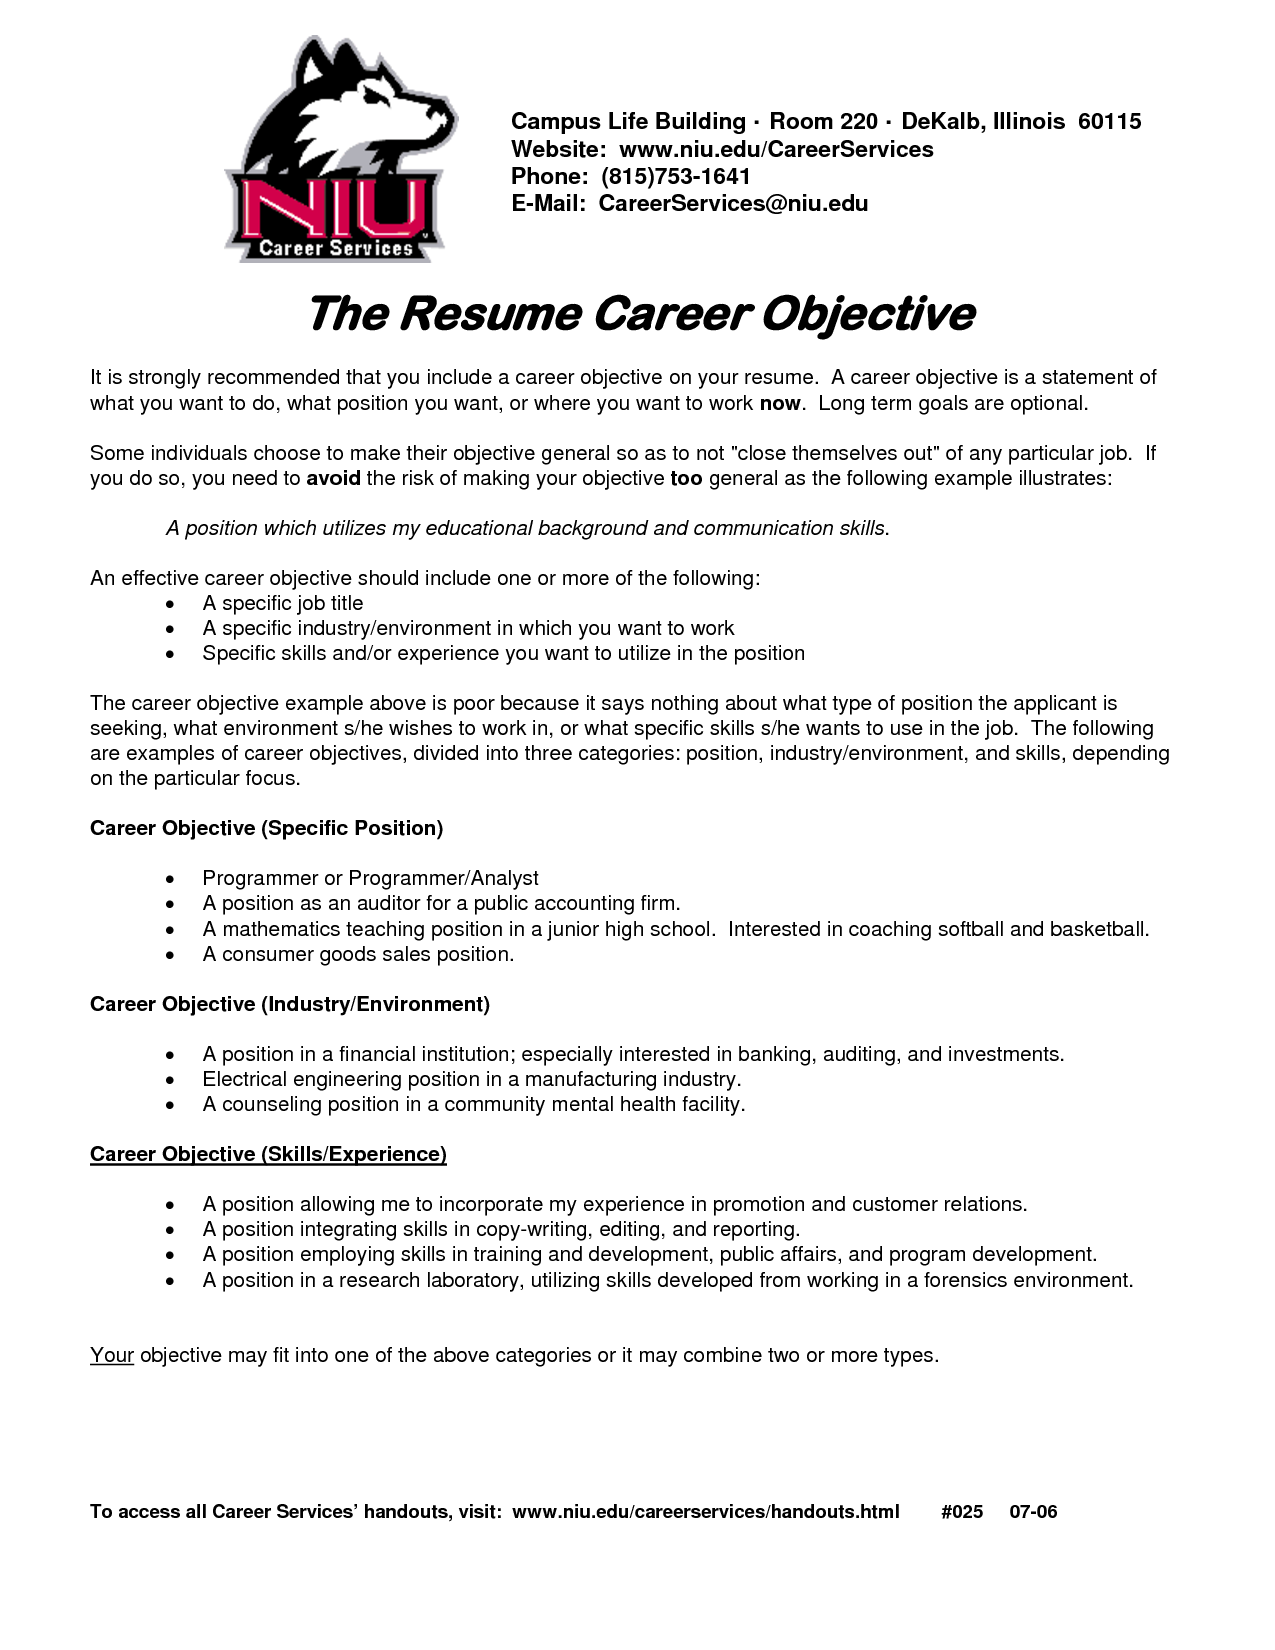 Good Work Objective For Resume Sample Job Objective Resume Writing Career  Objective Statement .  Objectives To Put On A Resume